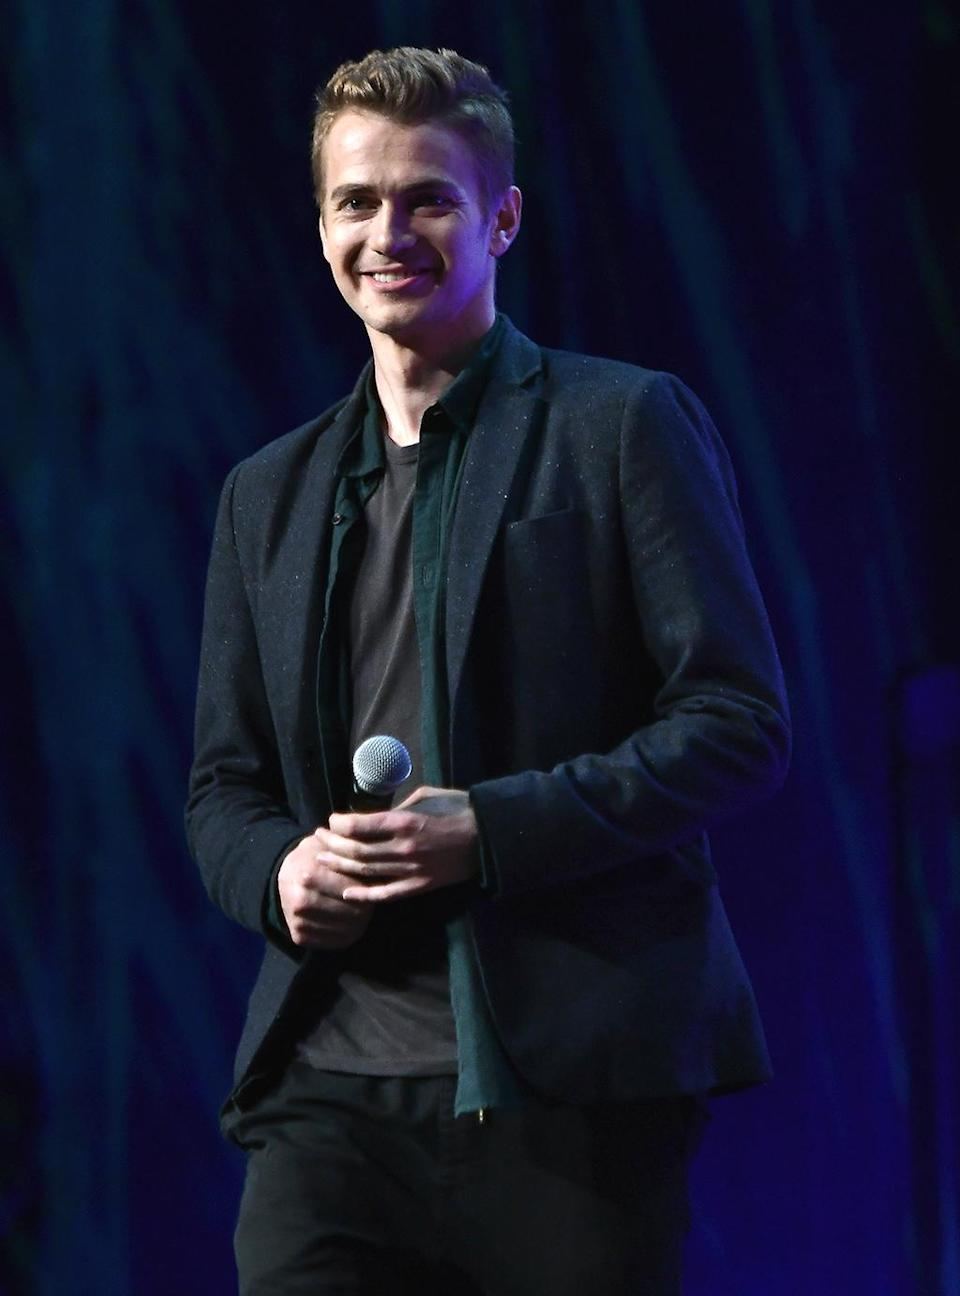 <p>Hayden Christensen, from <em>Episode II: Attack of the Clones</em> and <em>Episode III: Revenge of the Sith</em>, joined the panel and described how he couldn't stop making light saber noises during the duels. (Photo: Gustavo Caballero/Getty Images) </p>